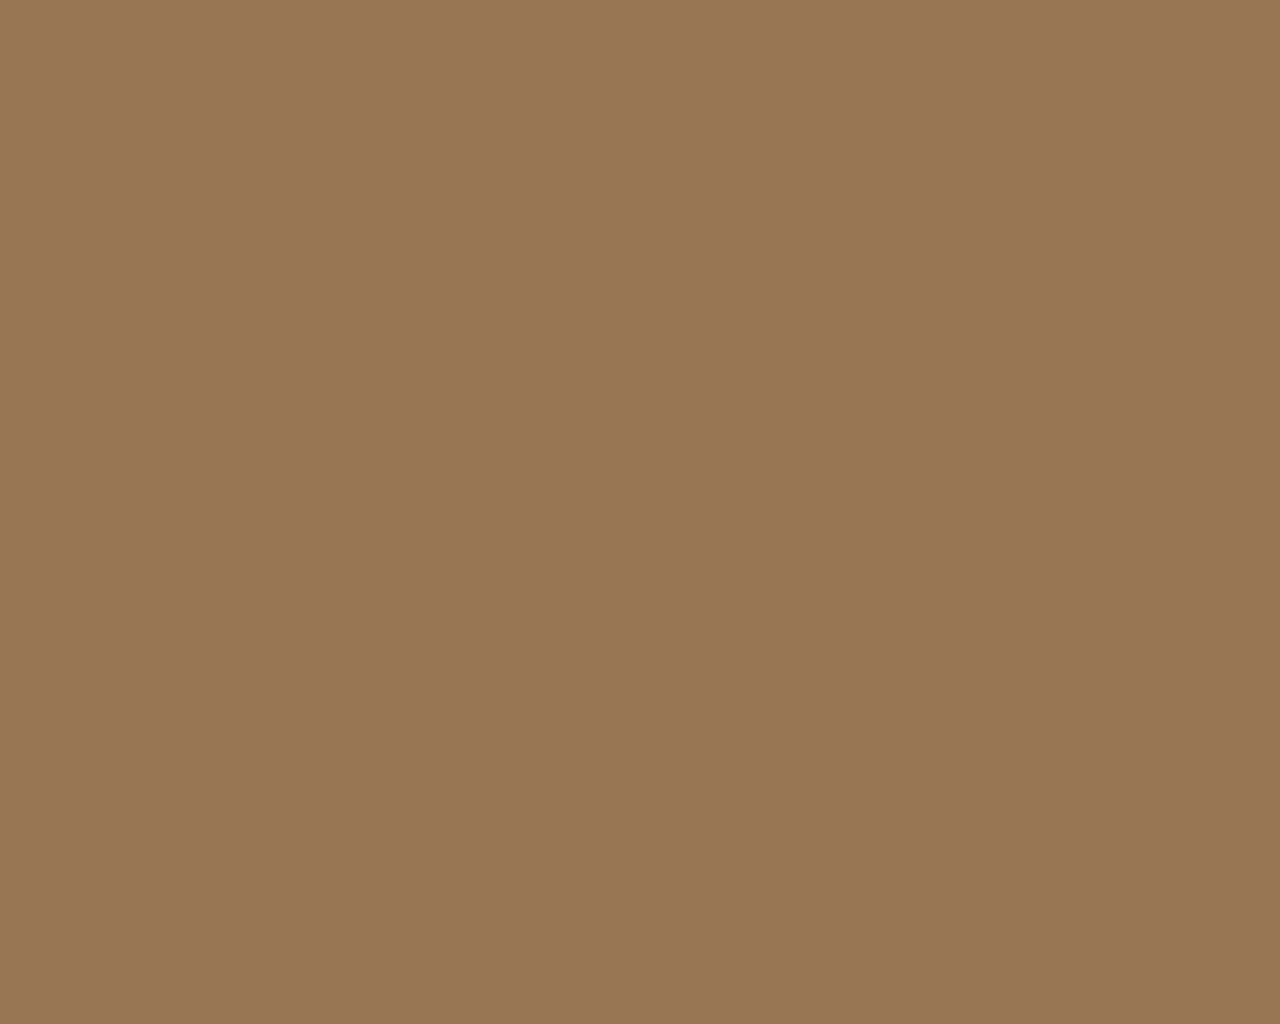 1280x1024 Pale Brown Solid Color Background 1280x1024